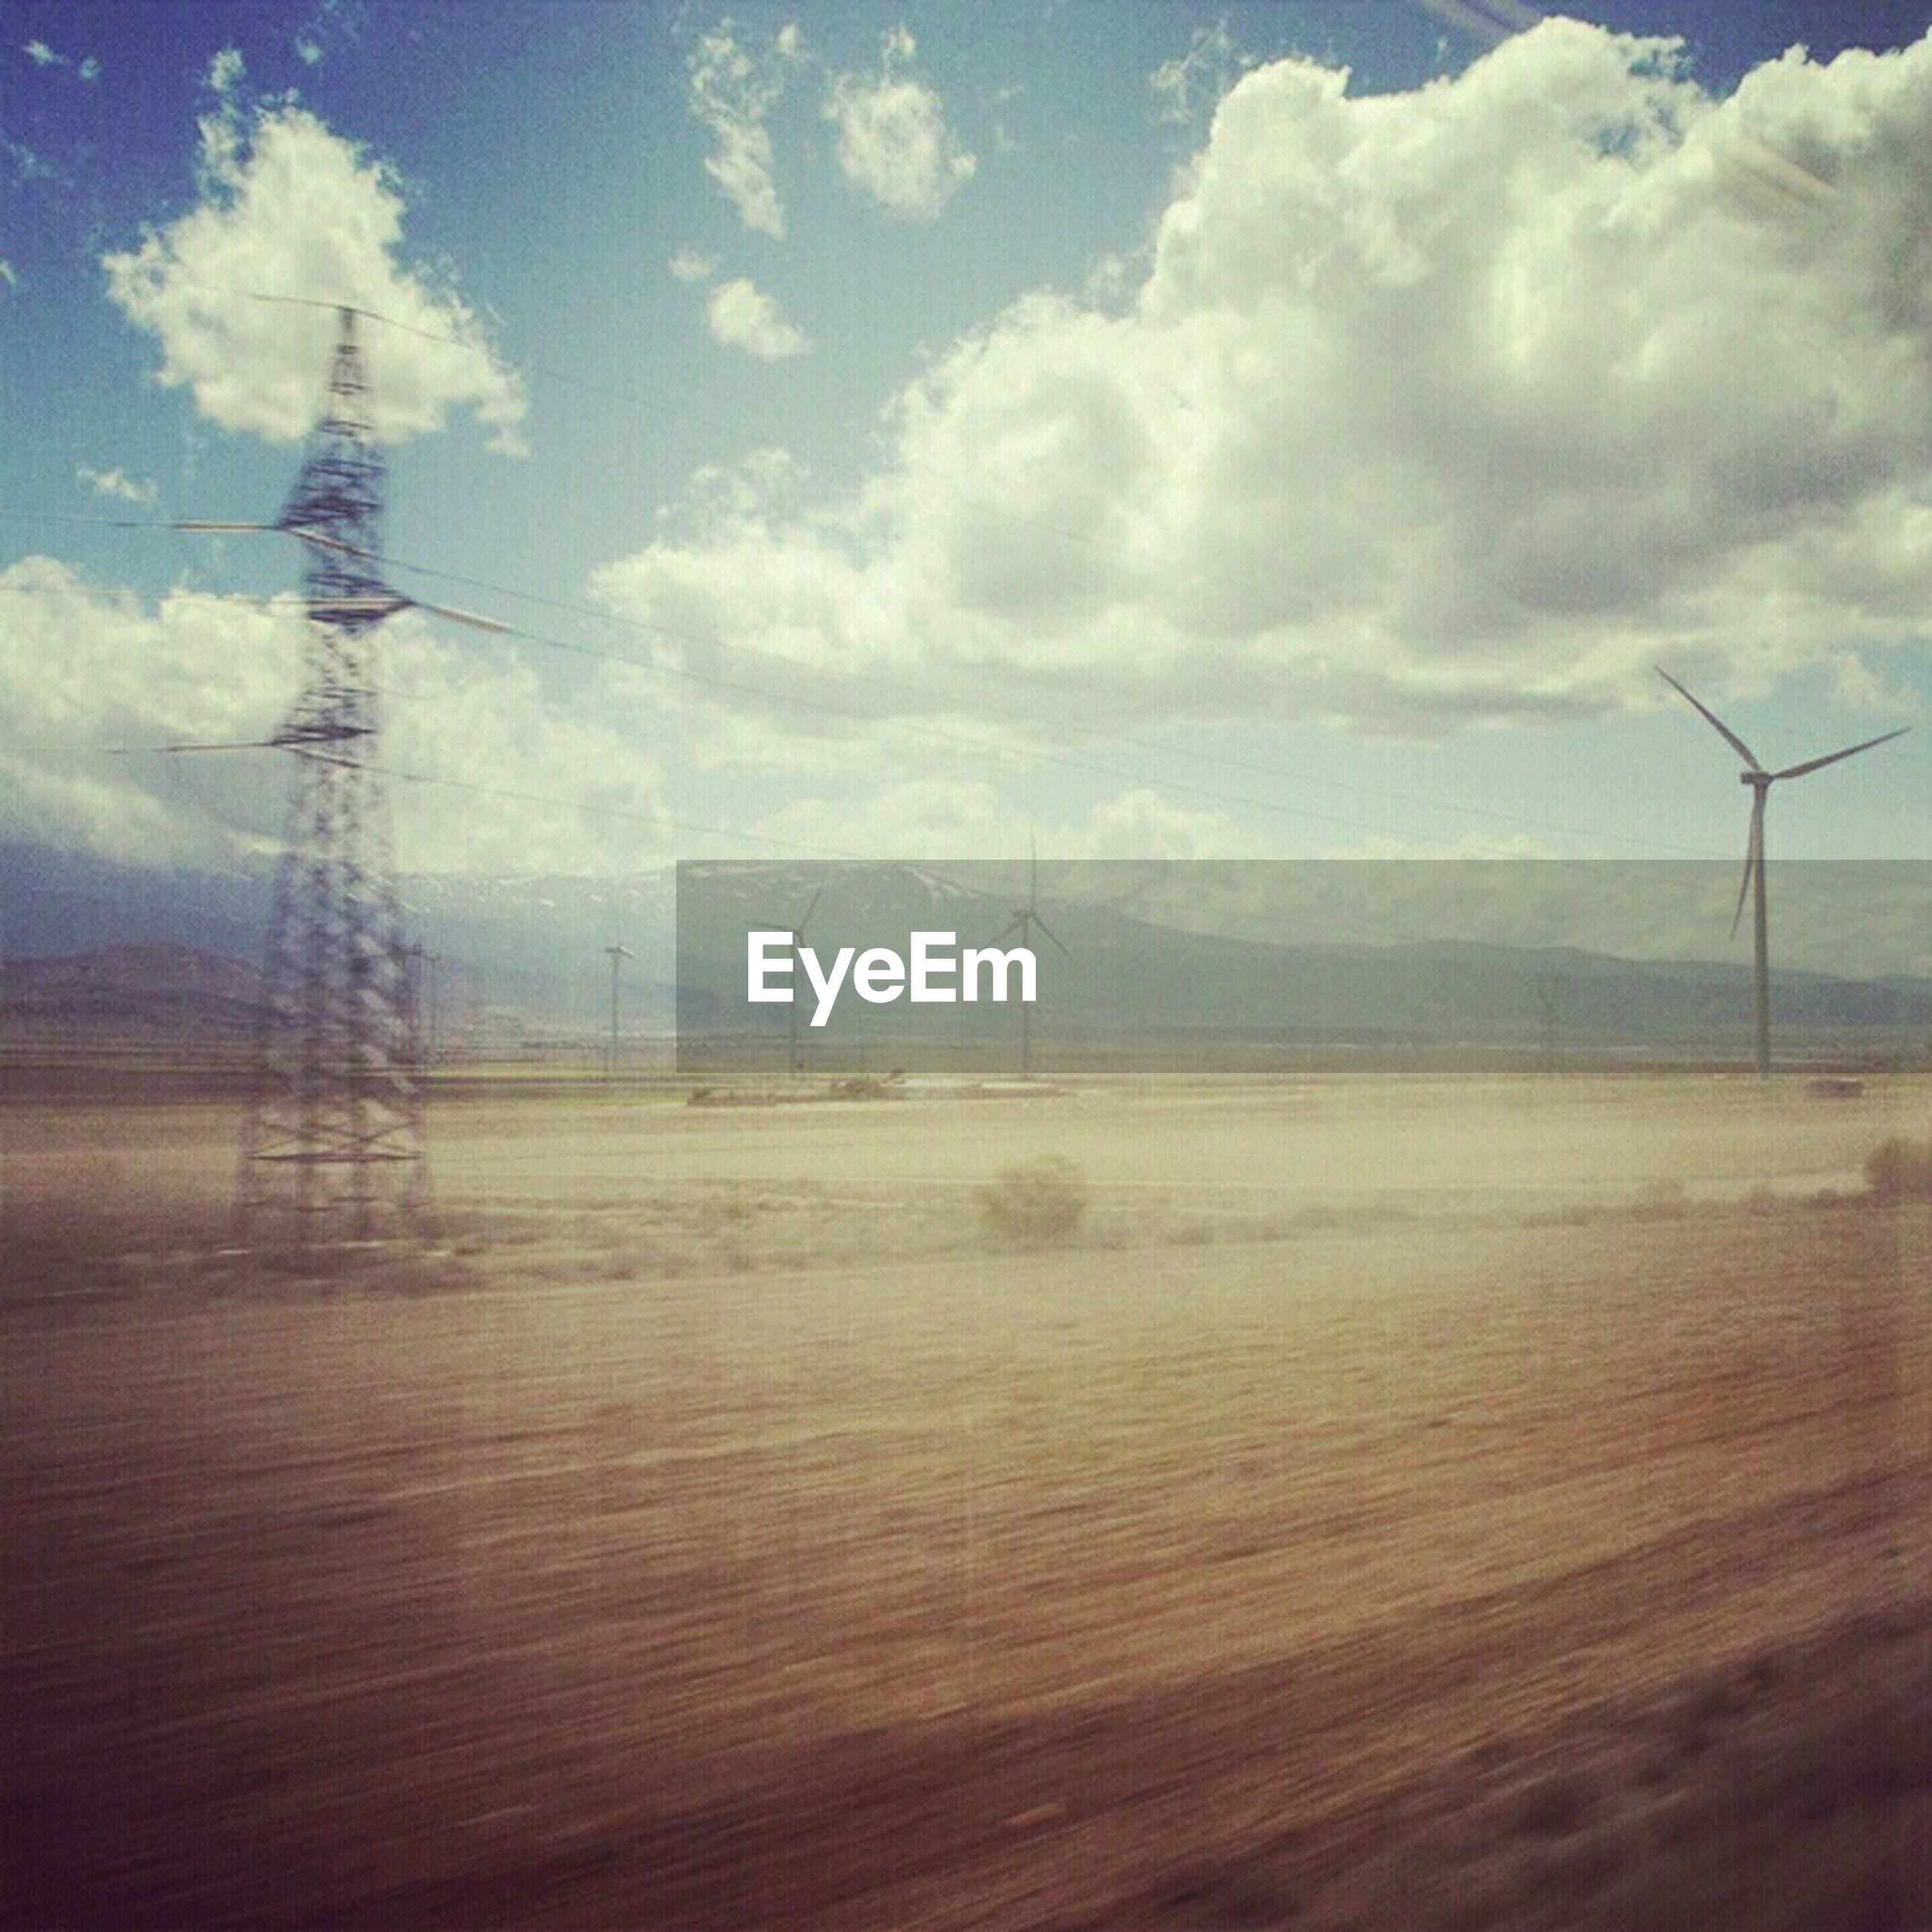 fuel and power generation, electricity pylon, sky, electricity, tranquility, tranquil scene, power supply, technology, power line, landscape, scenics, cloud - sky, nature, wind turbine, beauty in nature, connection, alternative energy, wind power, environmental conservation, cloudy